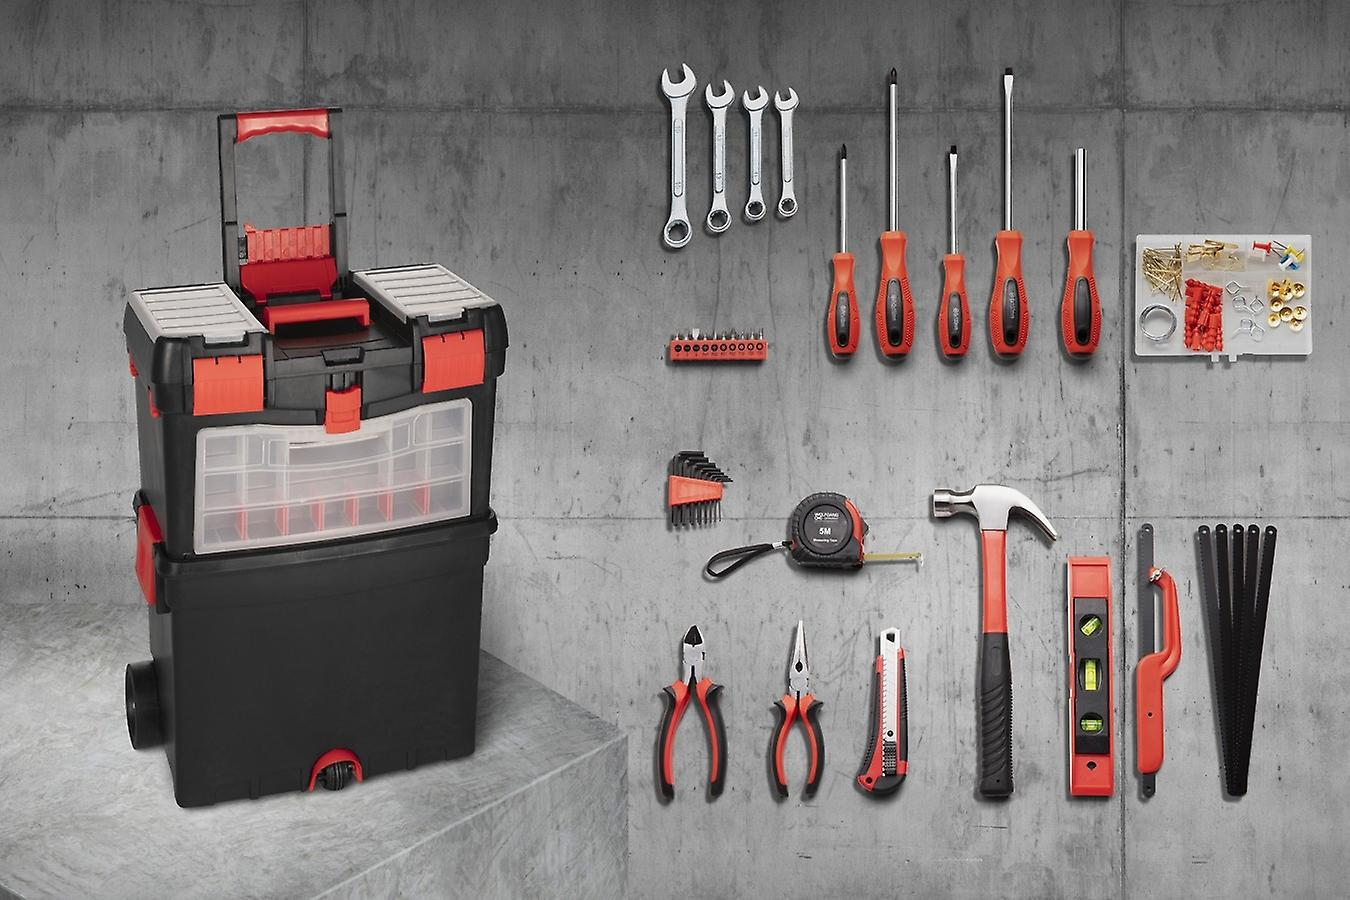 WOLFGANG 40 Parts Premium Tool Cart Filled, Universal Toolbox with Wrench Set, Screwdriver Set, Bit Set, Hammer, Imbuse, Pliers